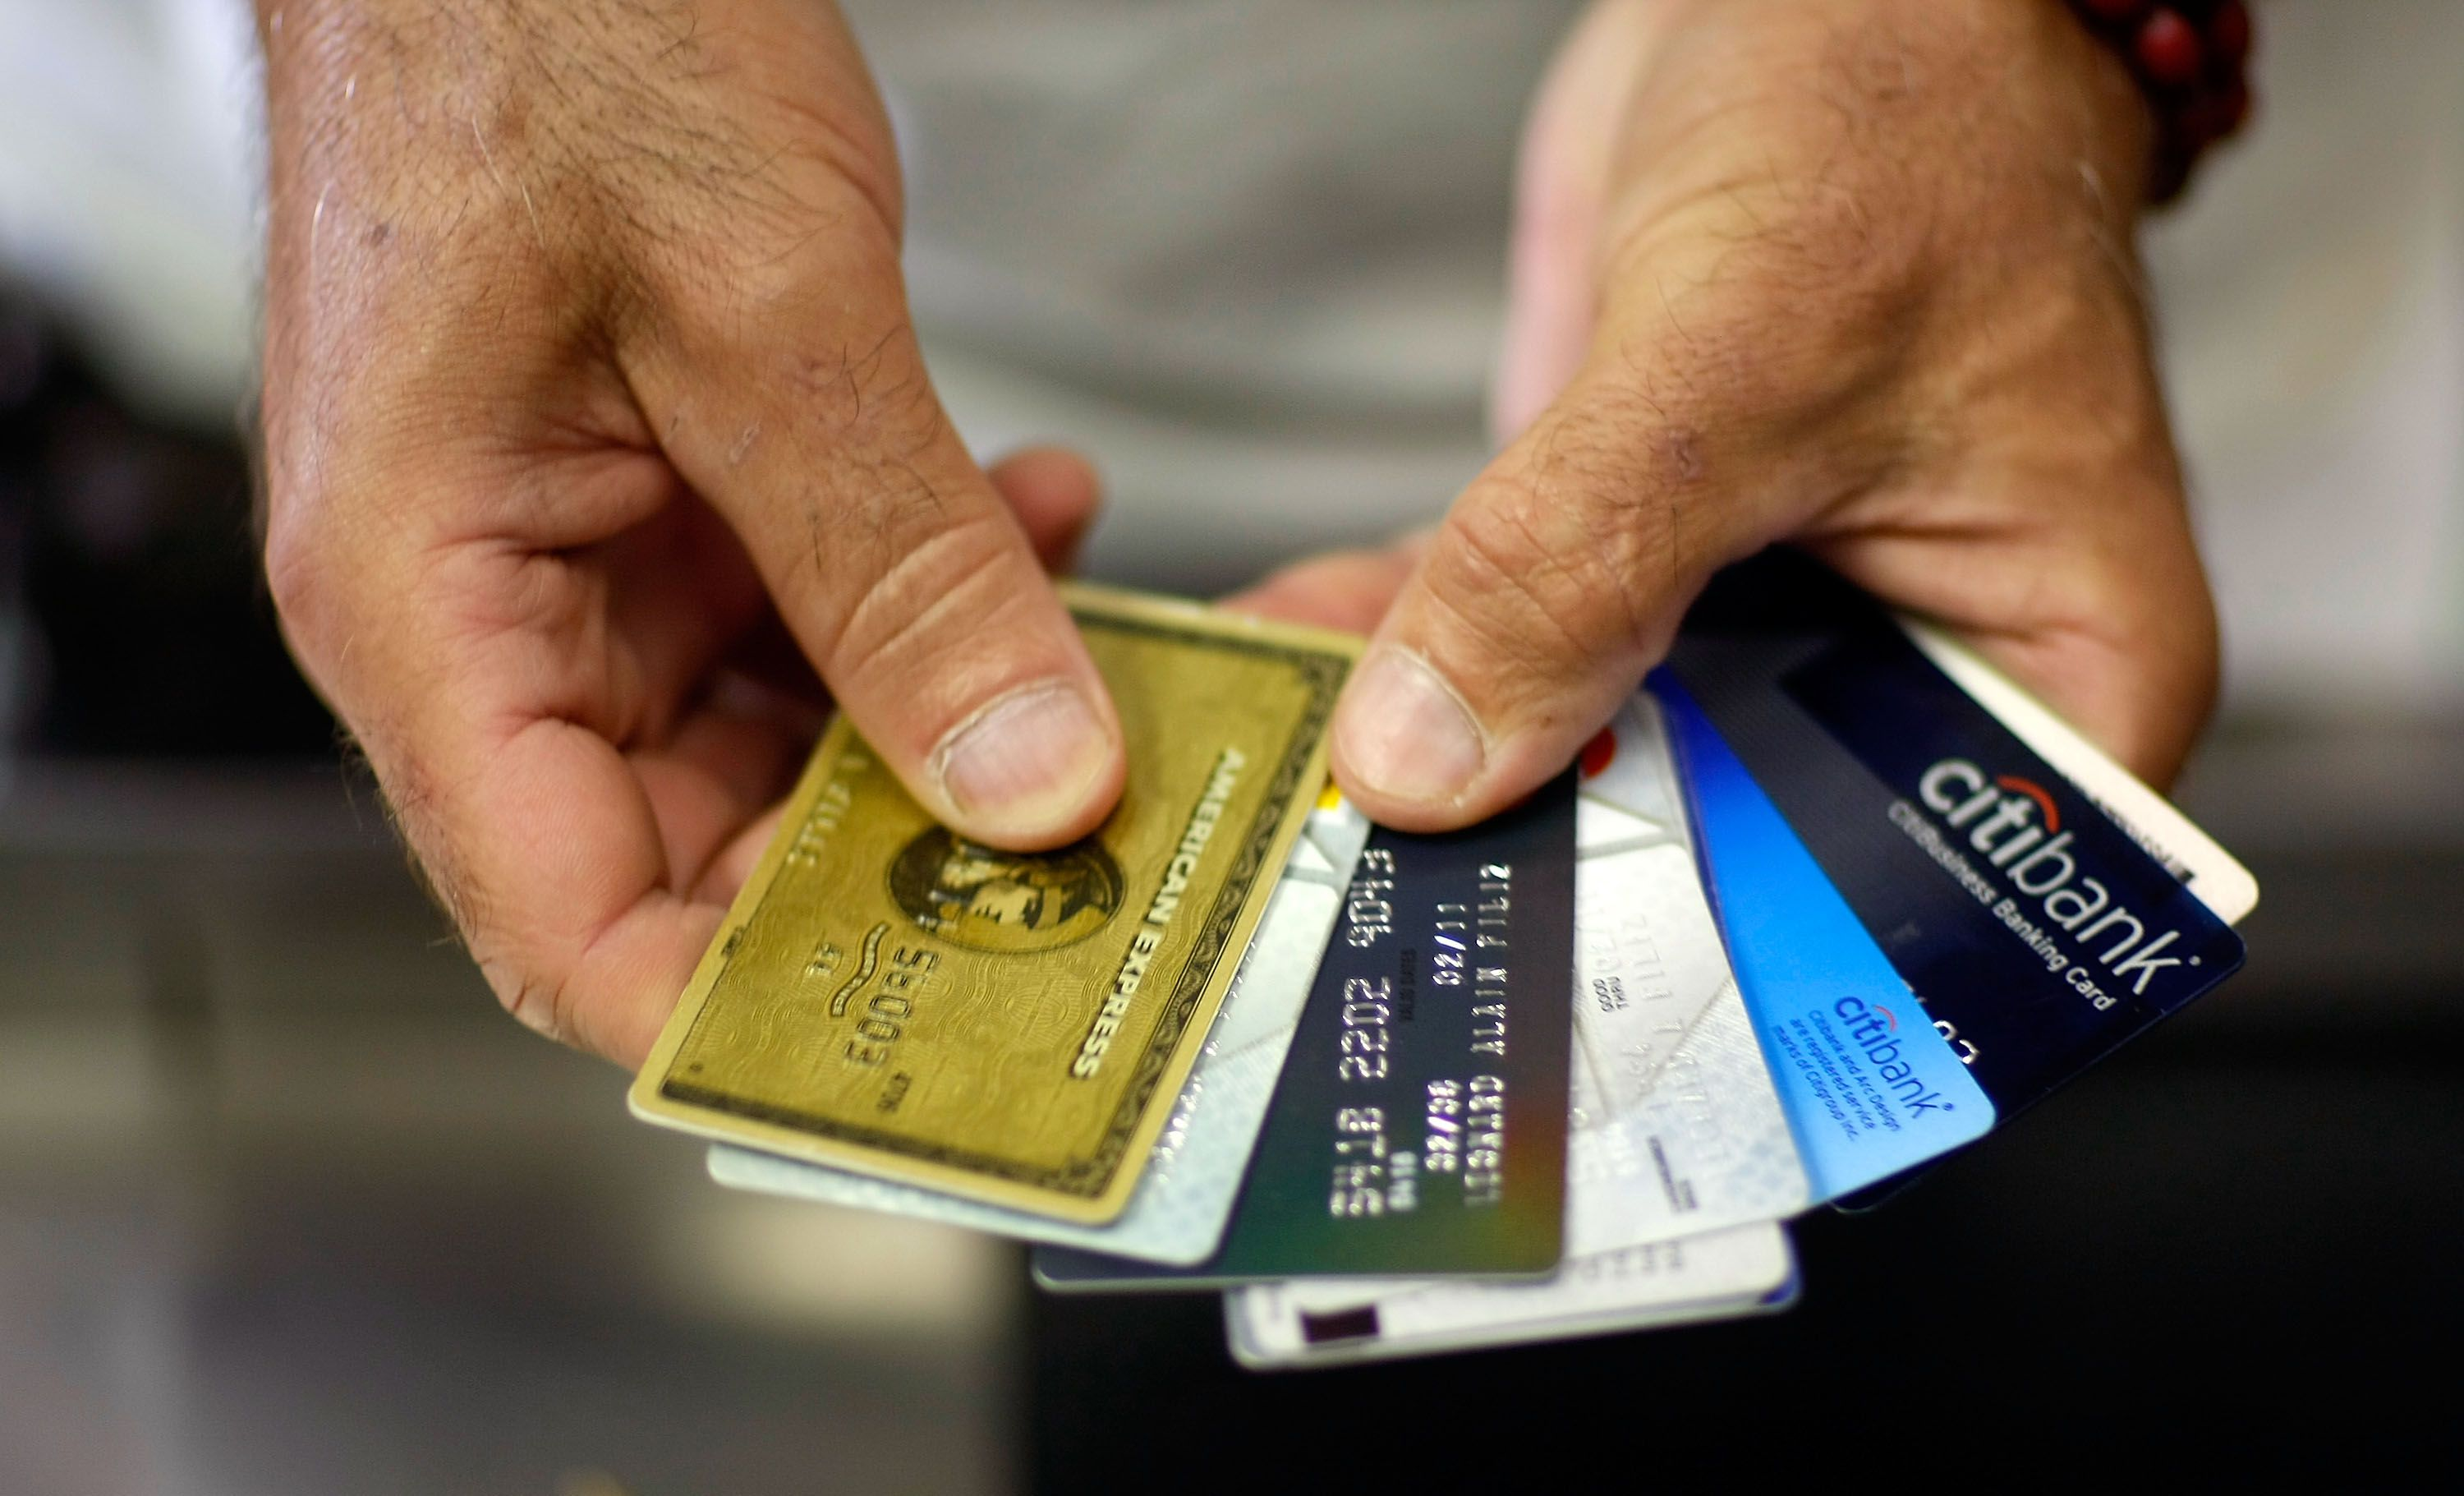 Get the second chance credit card and improve the credit